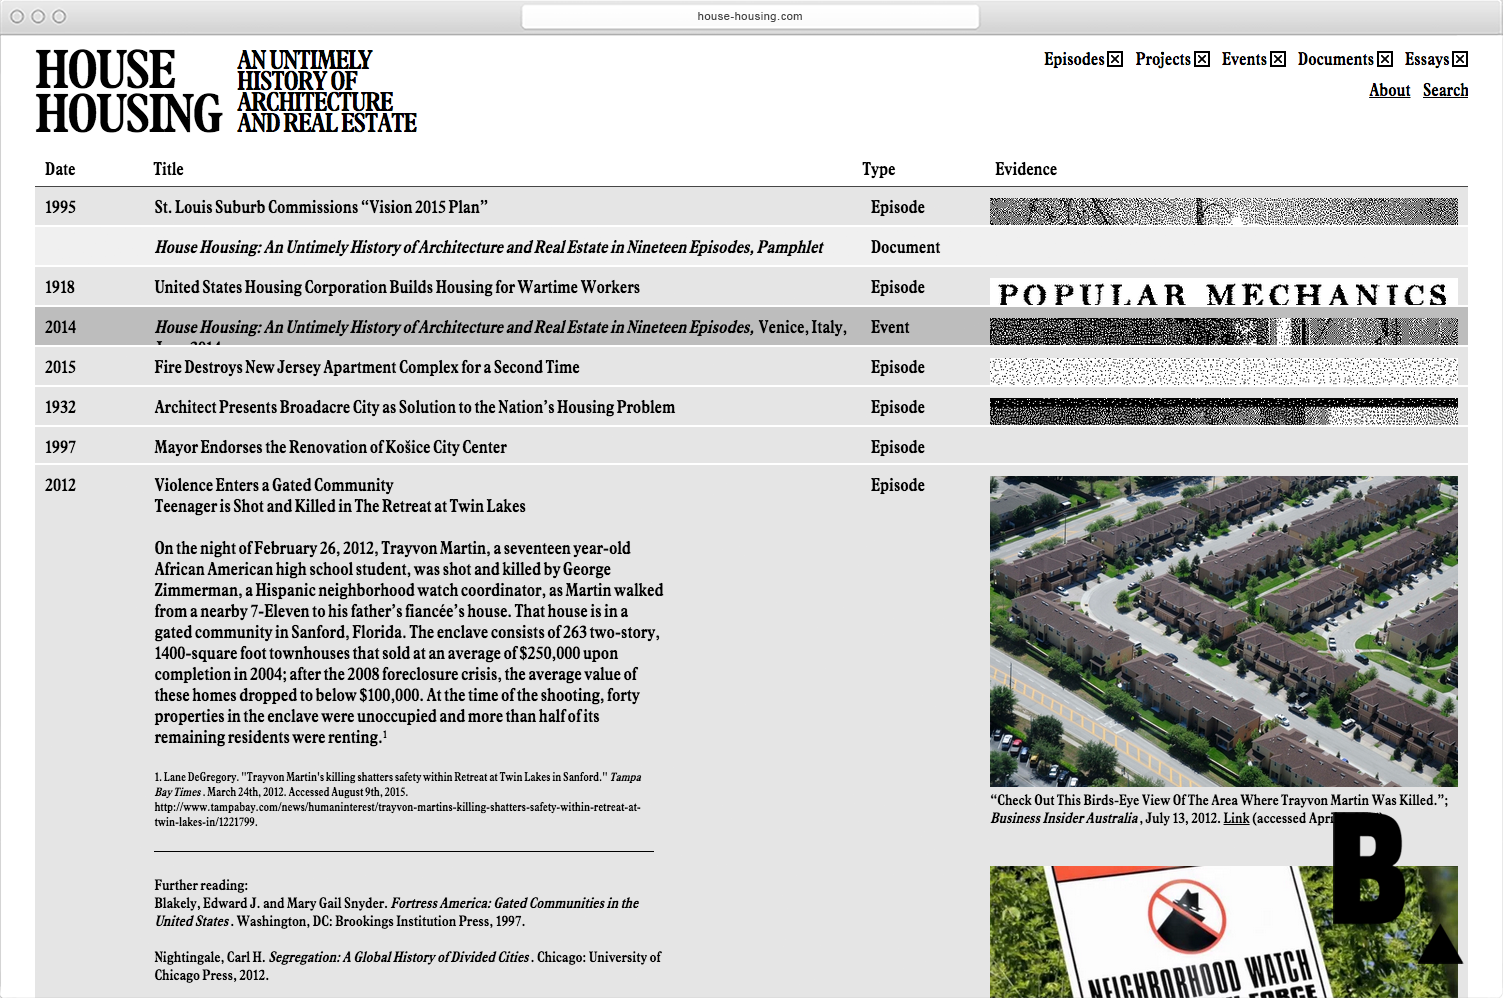 House Housing digital archive  - MTWTF